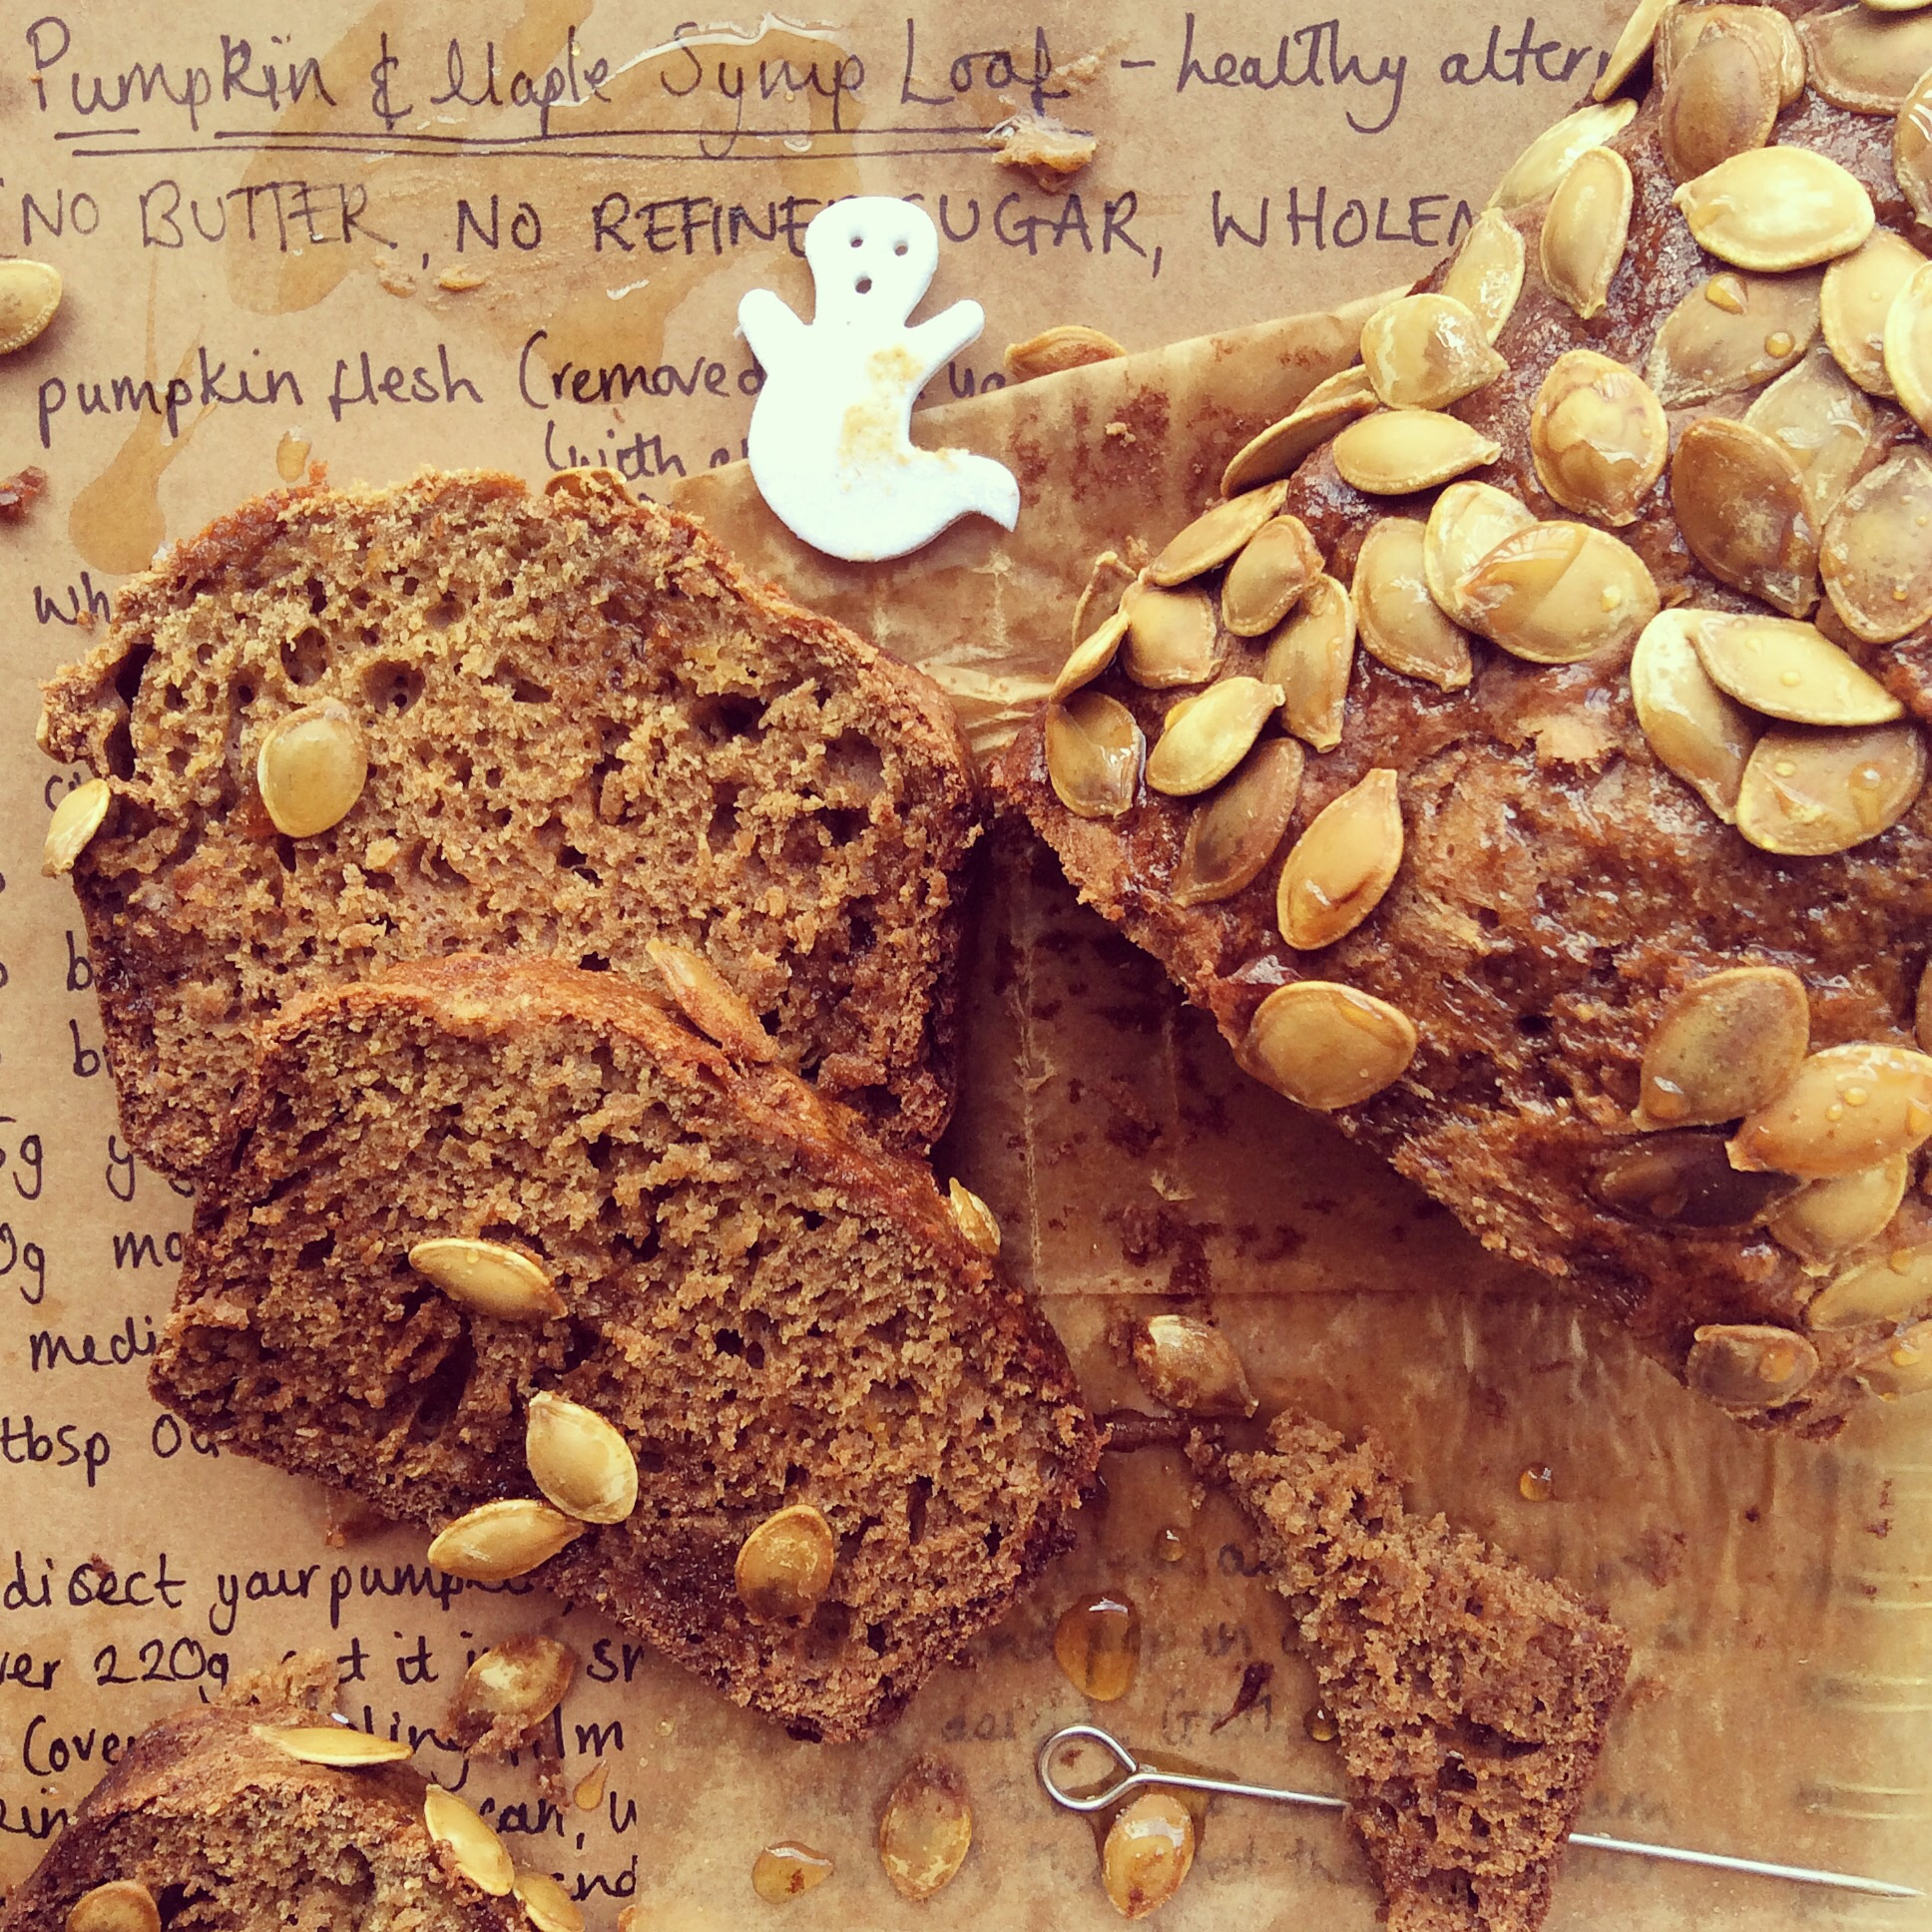 Healthy Halloween Baking - Pumpkin & Maple Syrup Loaf